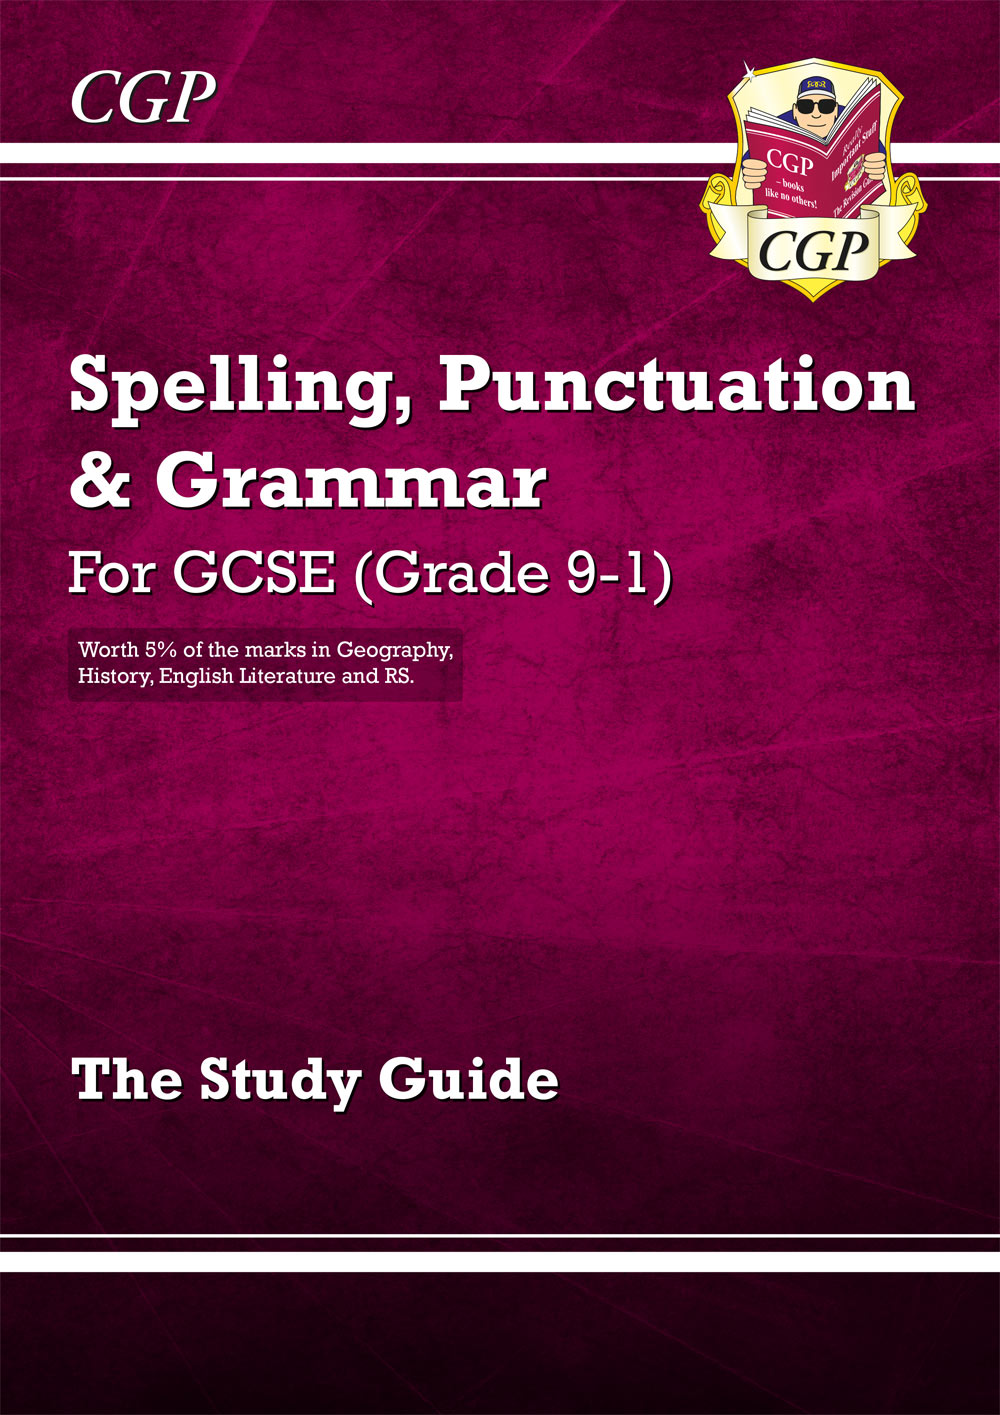 EGR42 - Spelling, Punctuation and Grammar for Grade 9-1 GCSE Study Guide